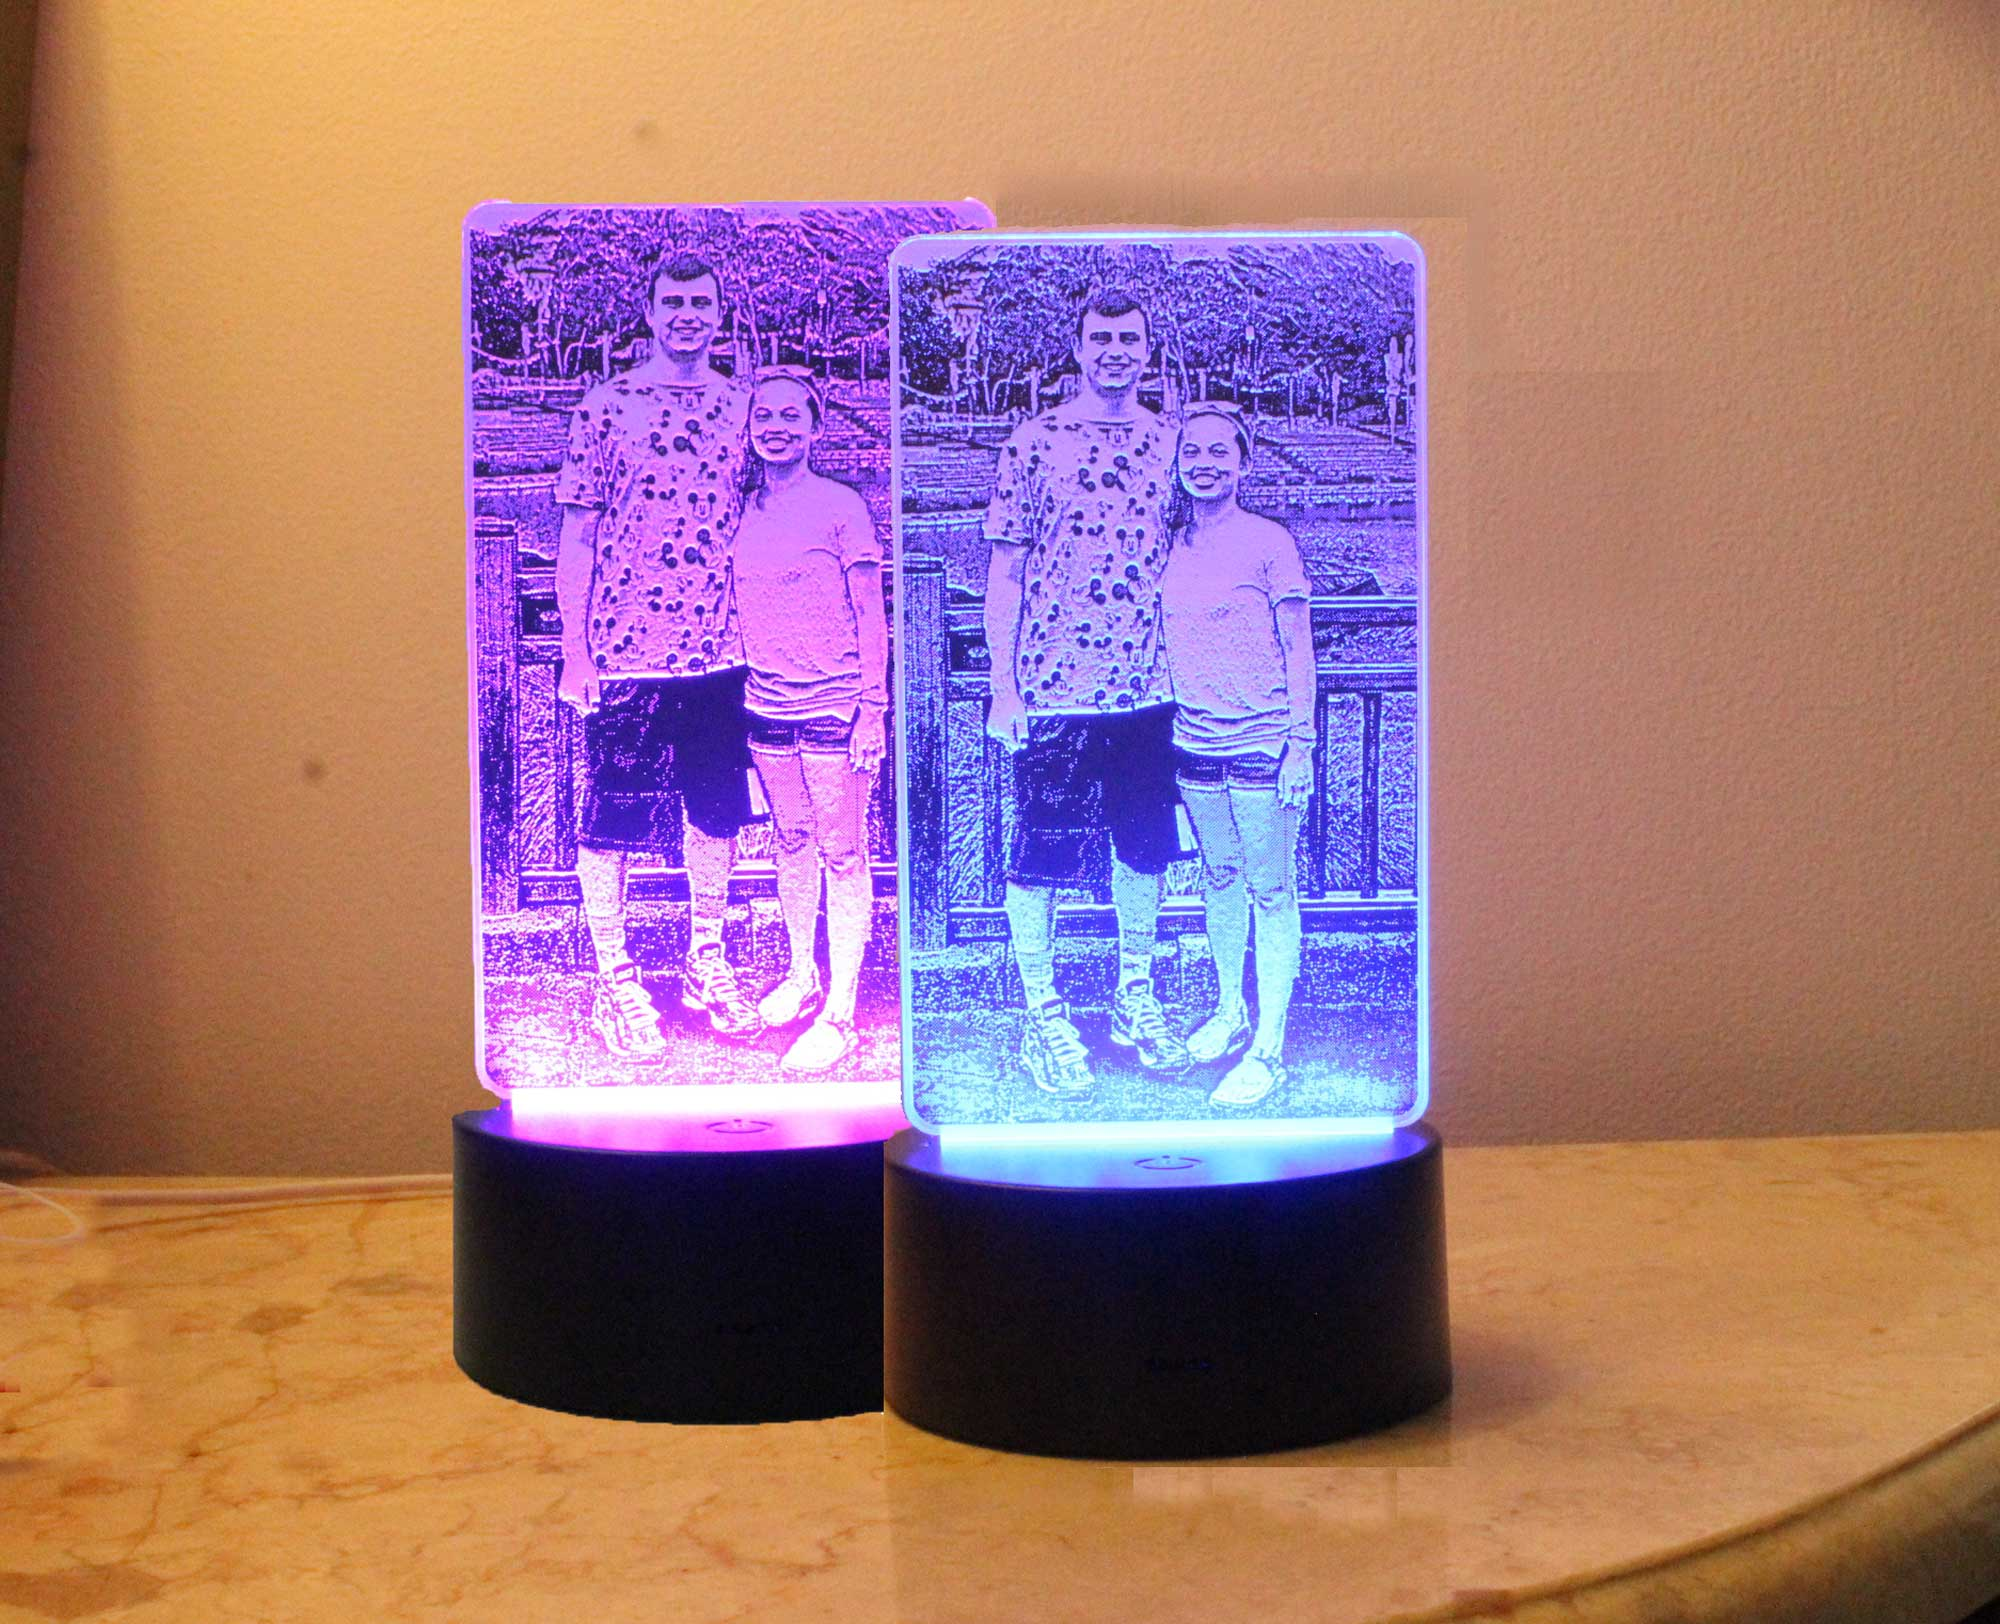 Personalized Photo Night Light, Etched in Acrylic Table top light - USB/110V/Battery